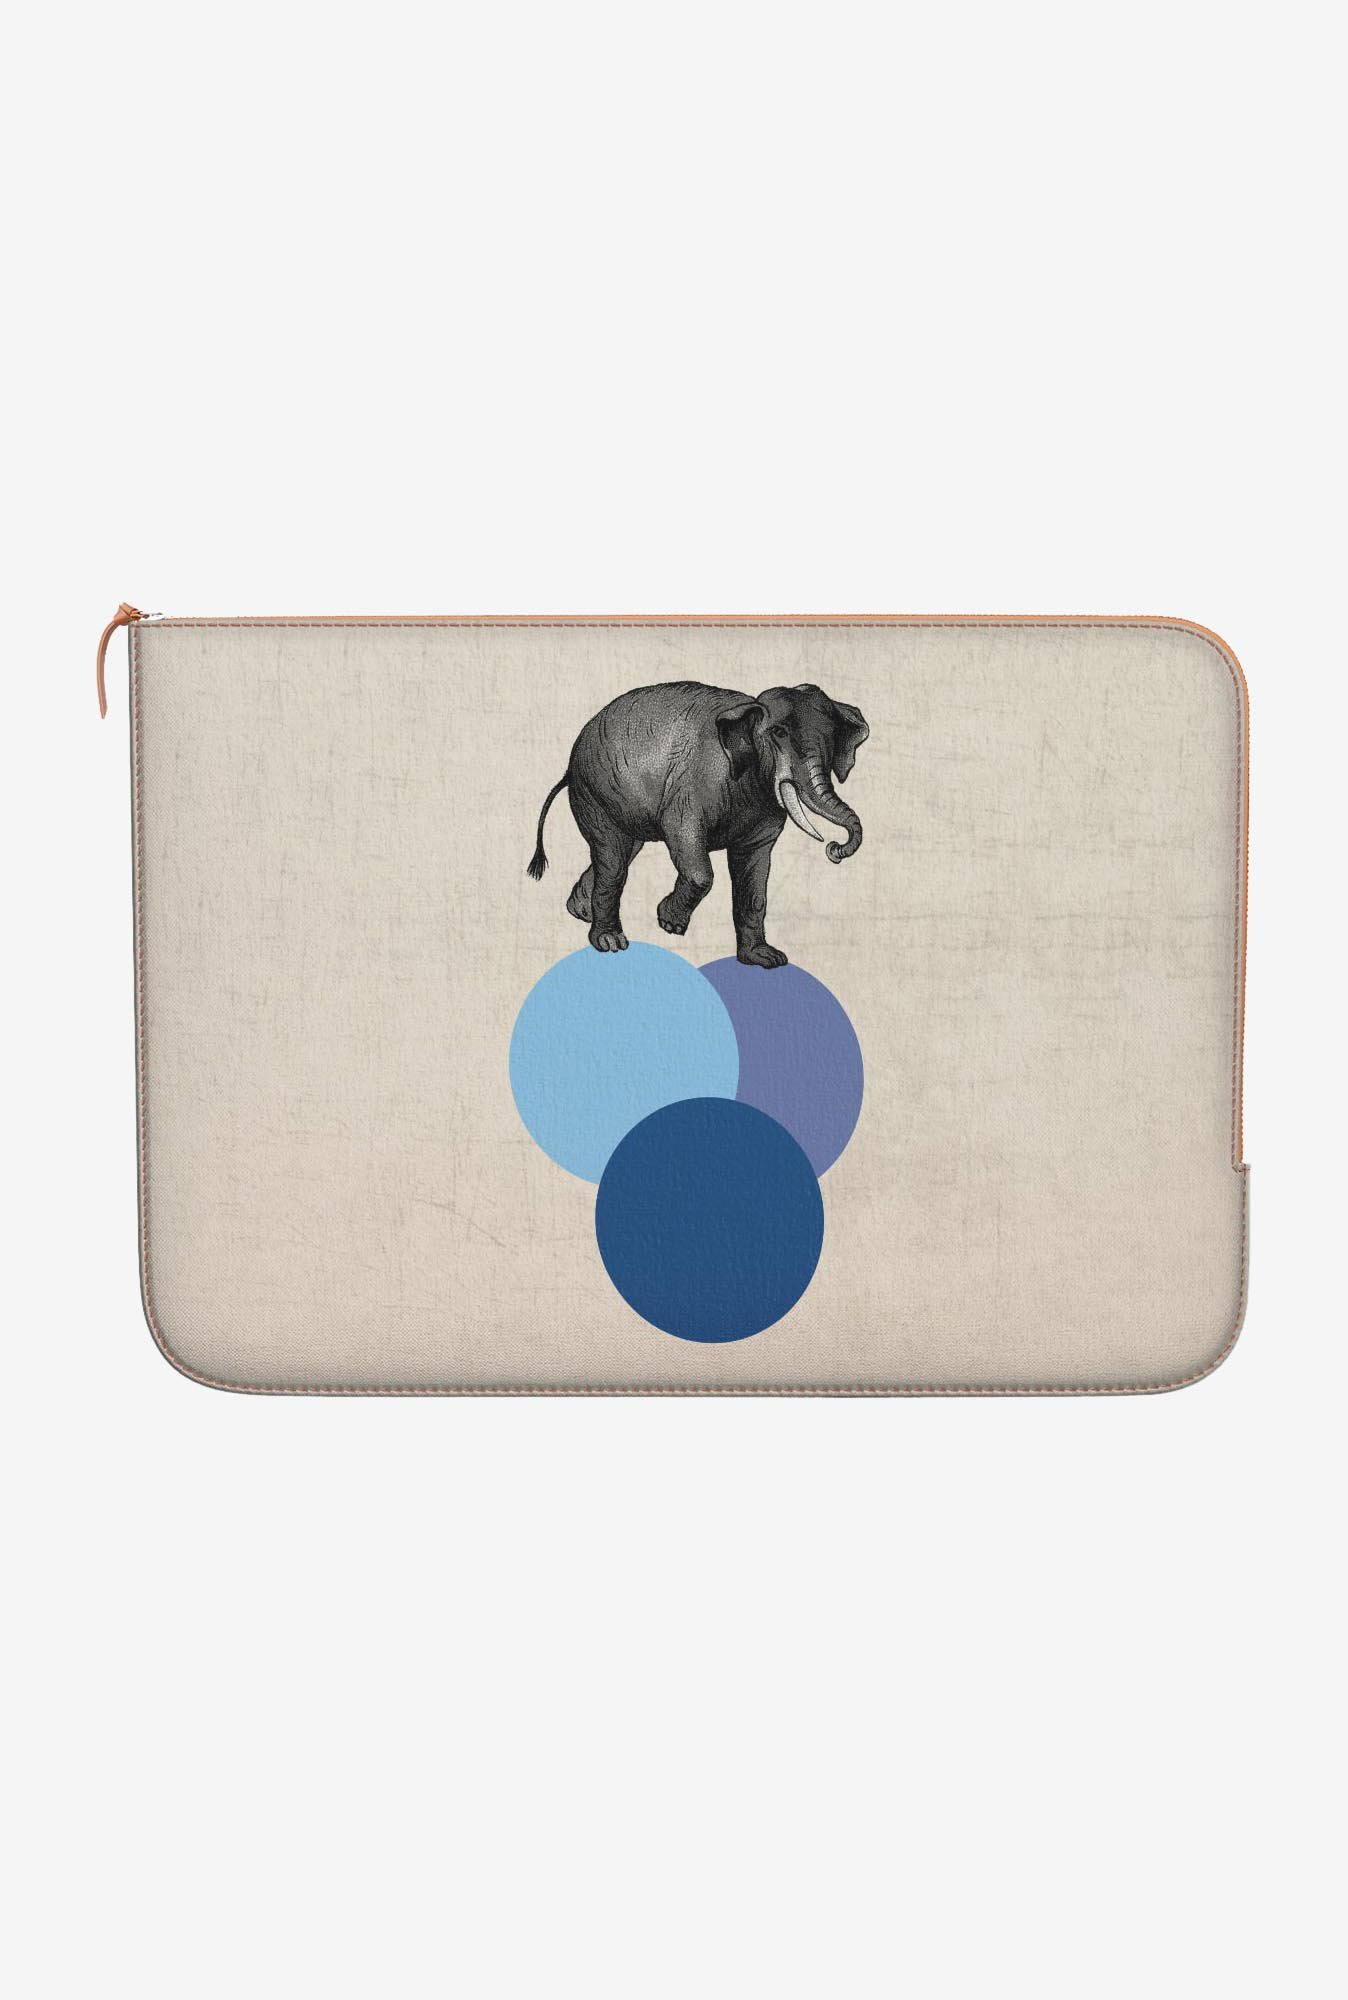 DailyObjects Elephant MacBook Air 11 Zippered Sleeve